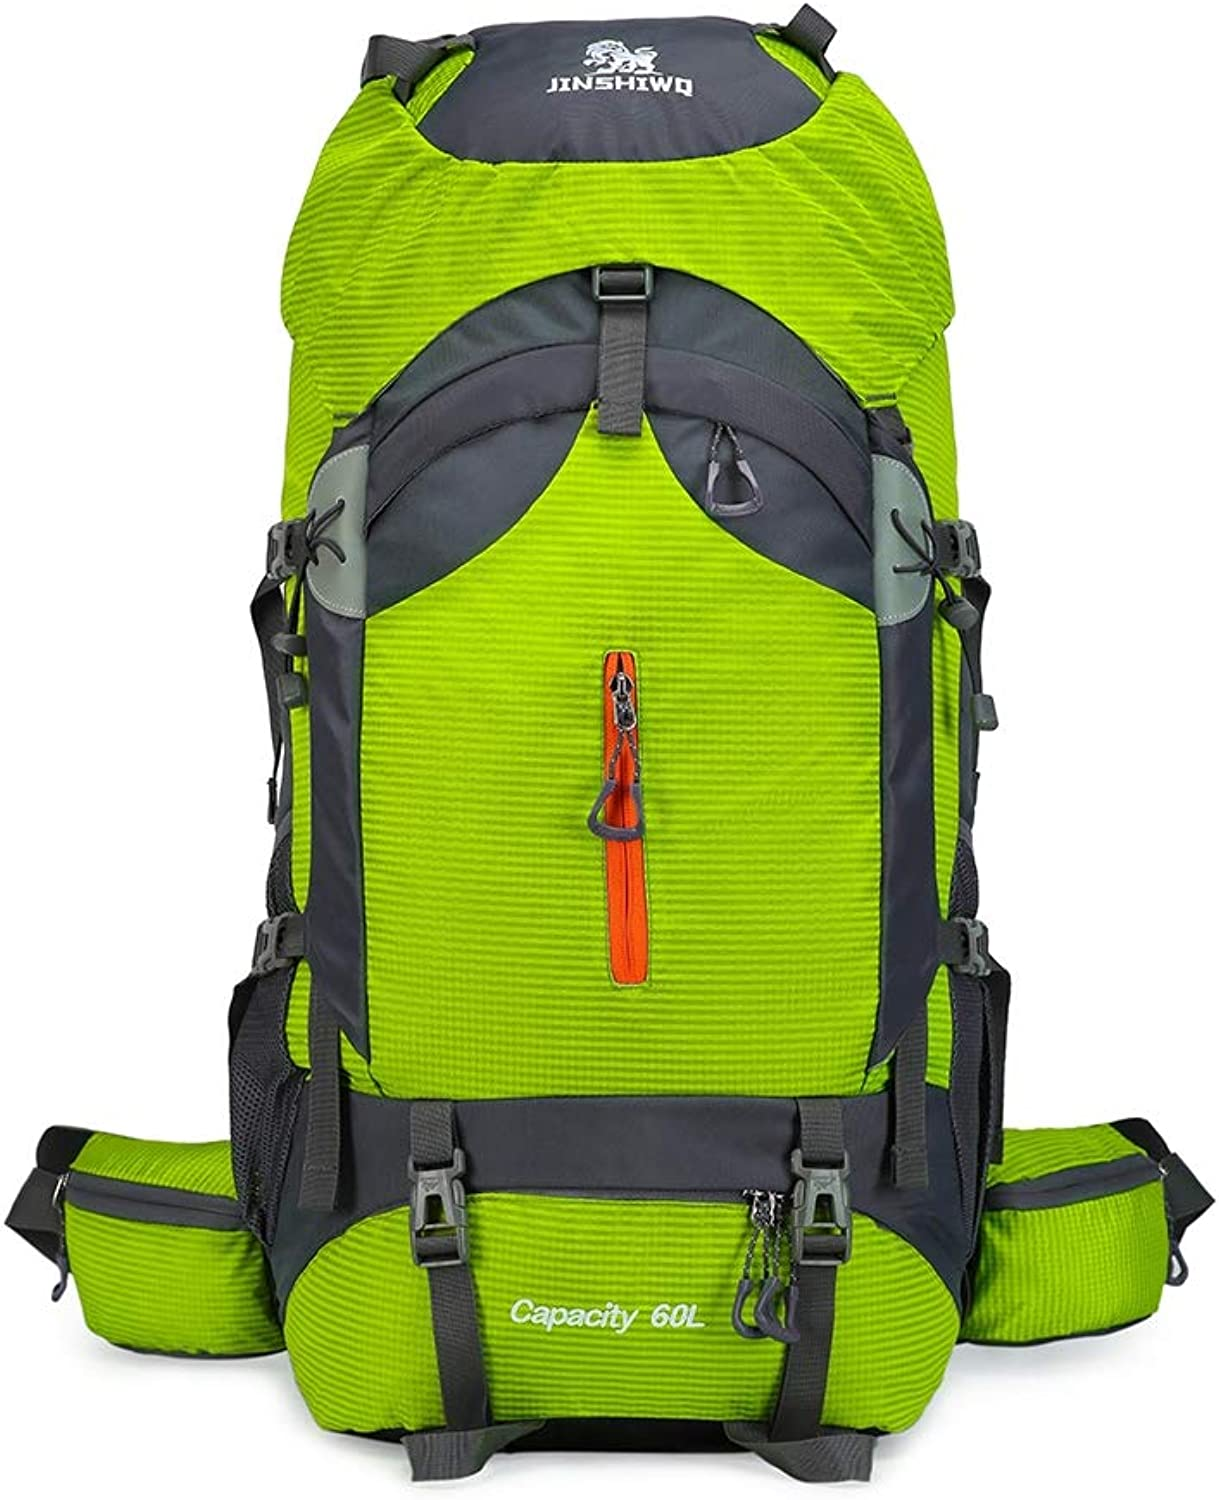 Outdoor Backpack Waterproof and Wearable Men and Women Models Suspended Back Frame Large Capacity 60L Detachable Back Frame for Travel Camping Mountaineering,Green